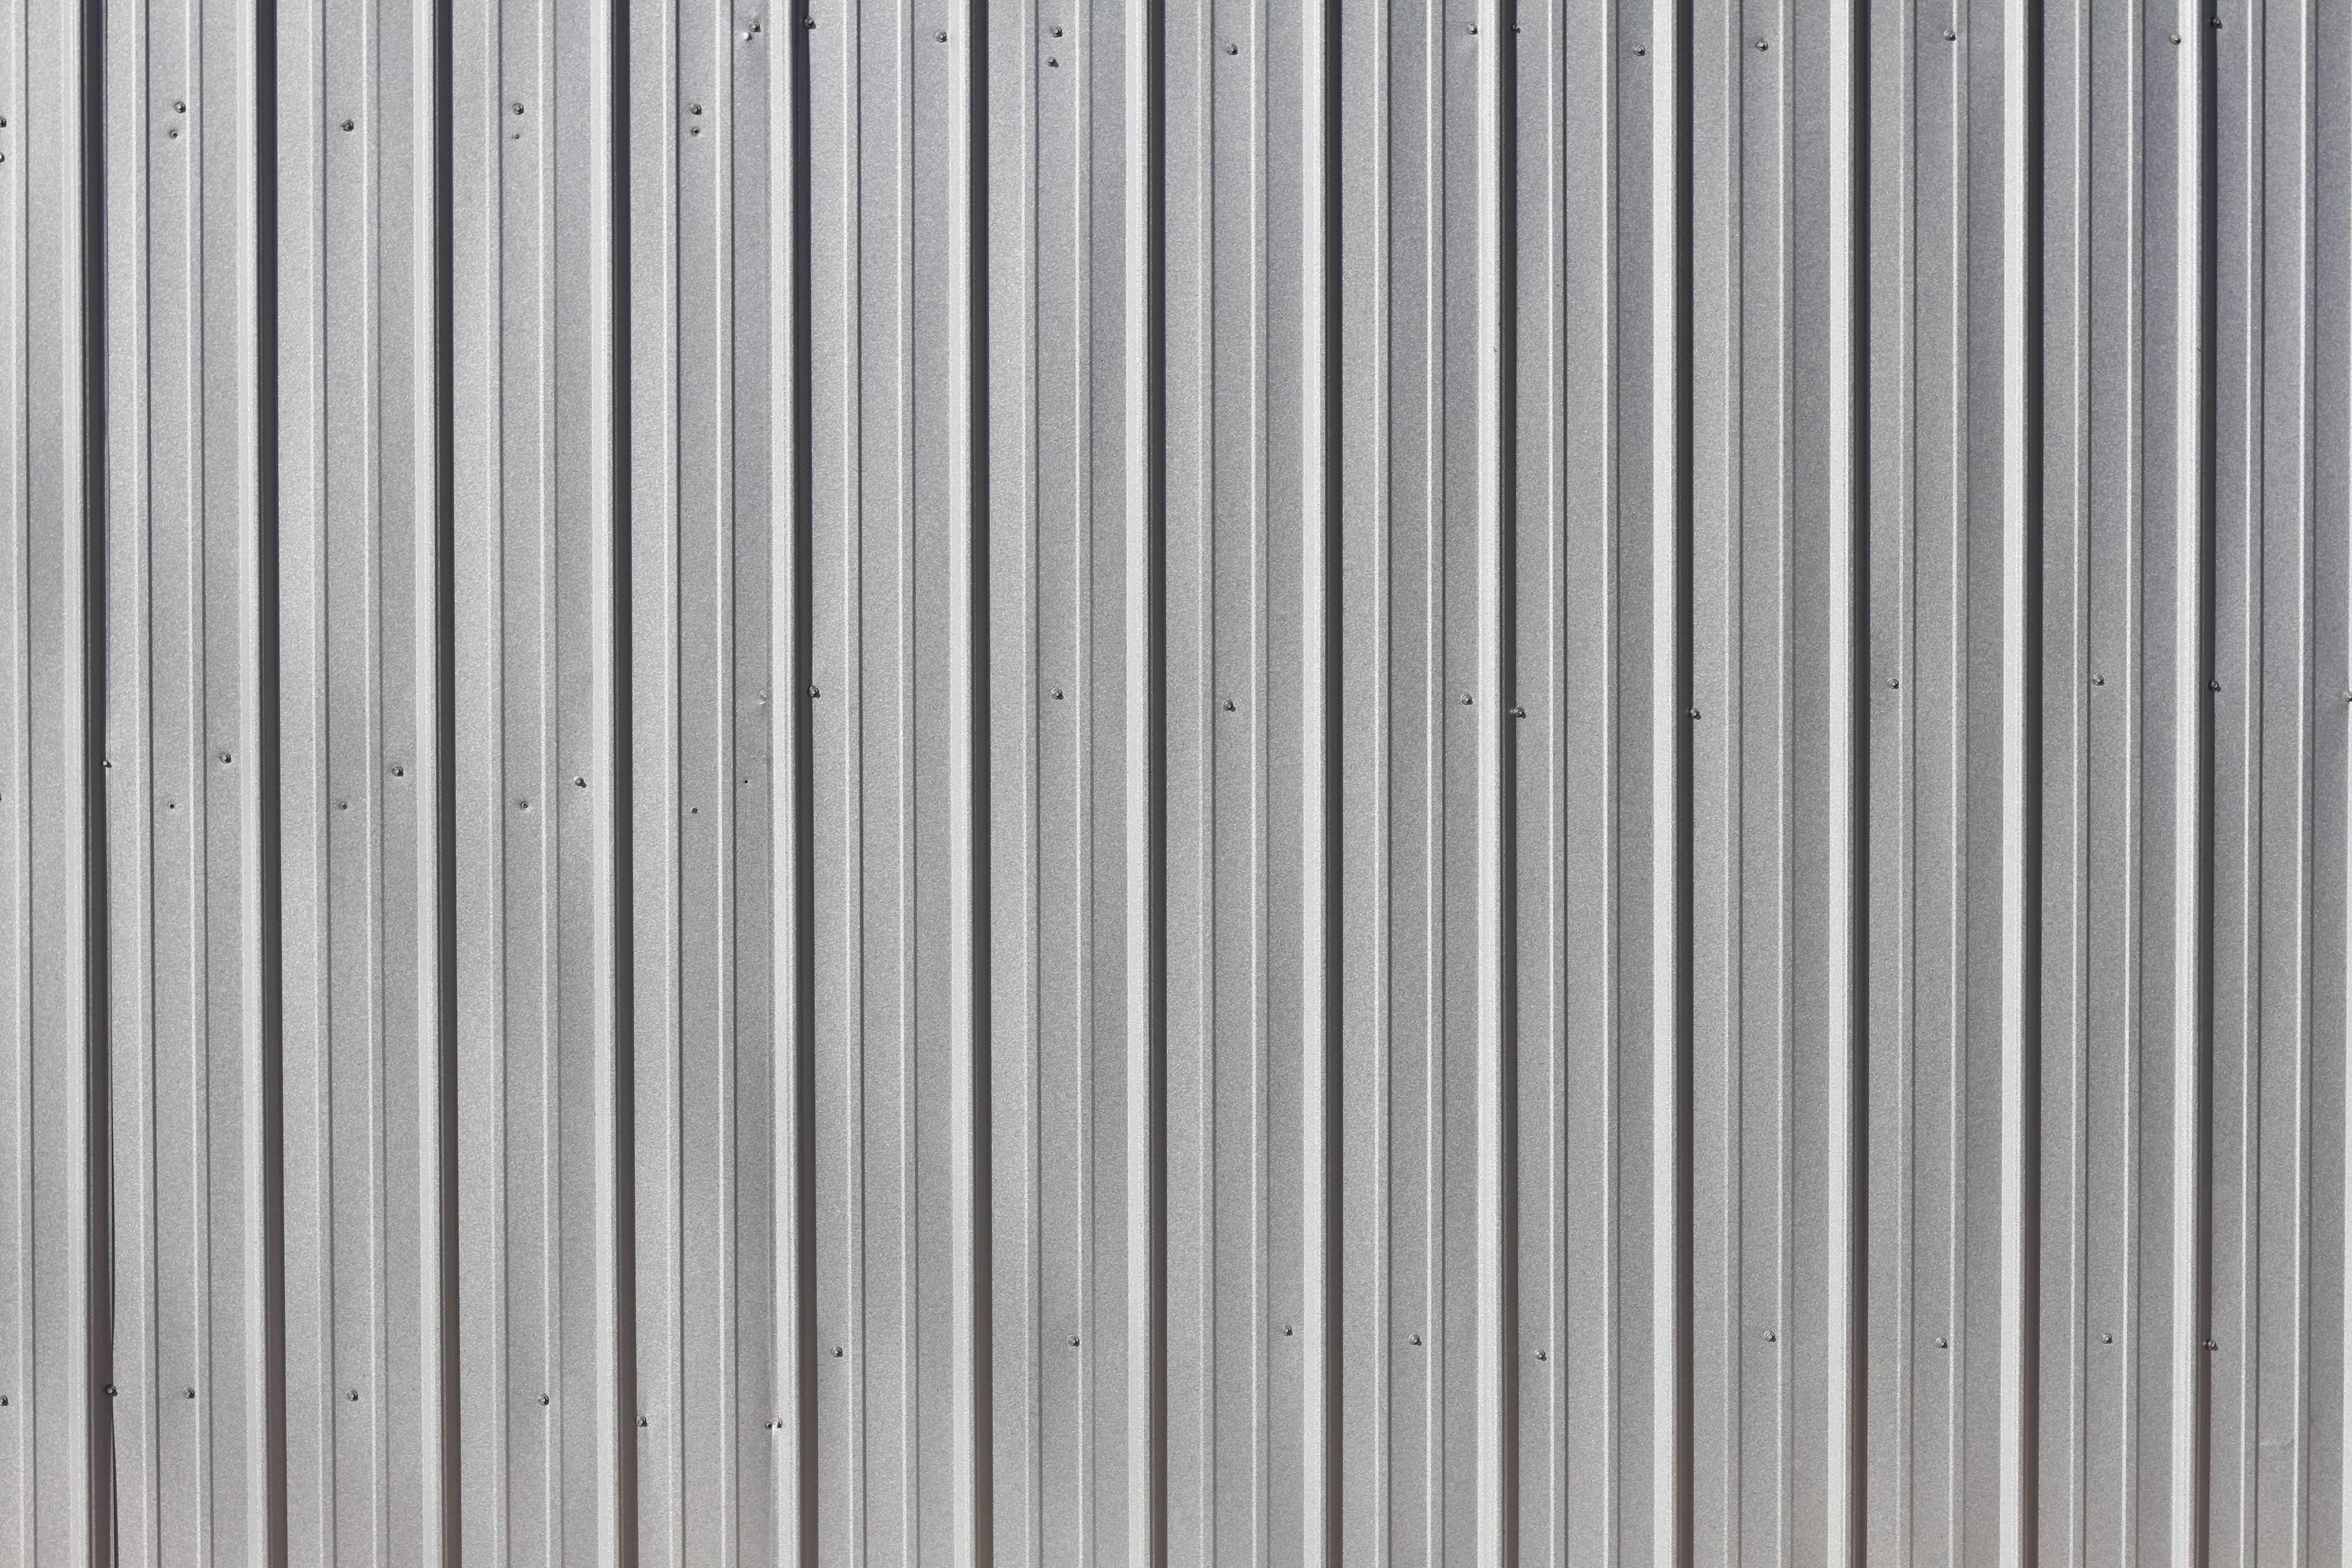 Image of: Corrugated Metal Siding Seattle